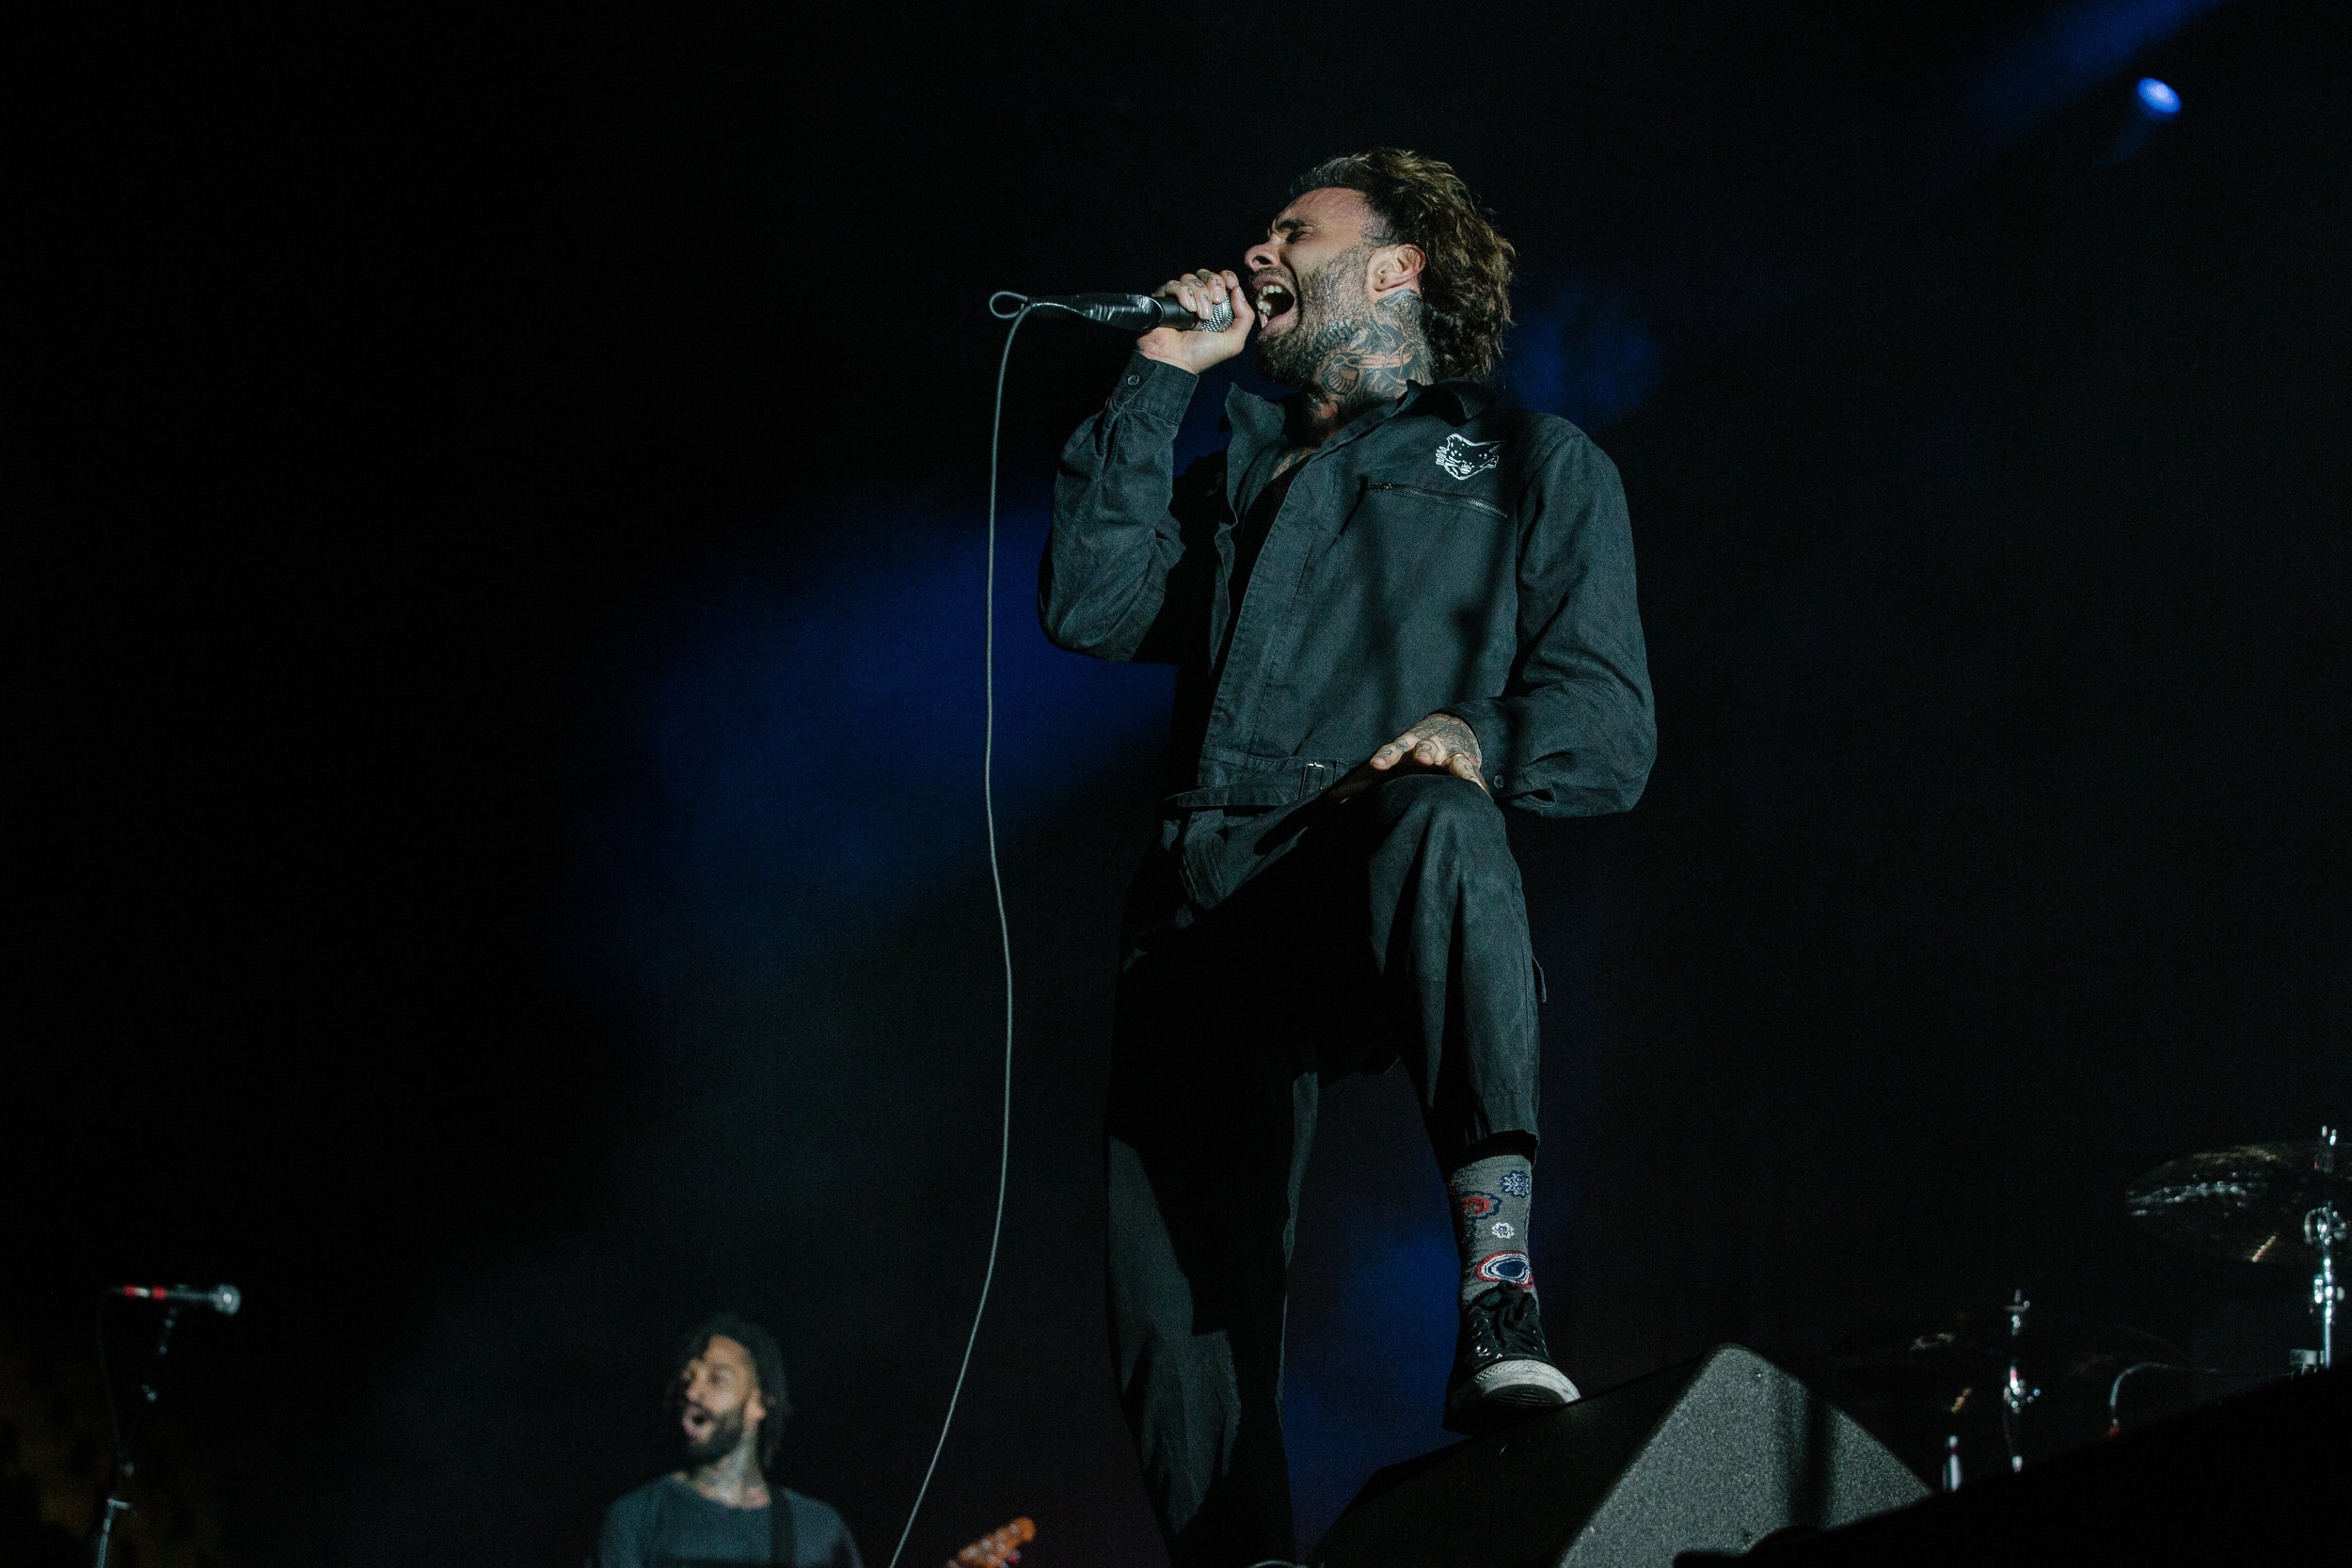 Fever 333 at EagleBank Arena (Photo by Anna Moneymaker)